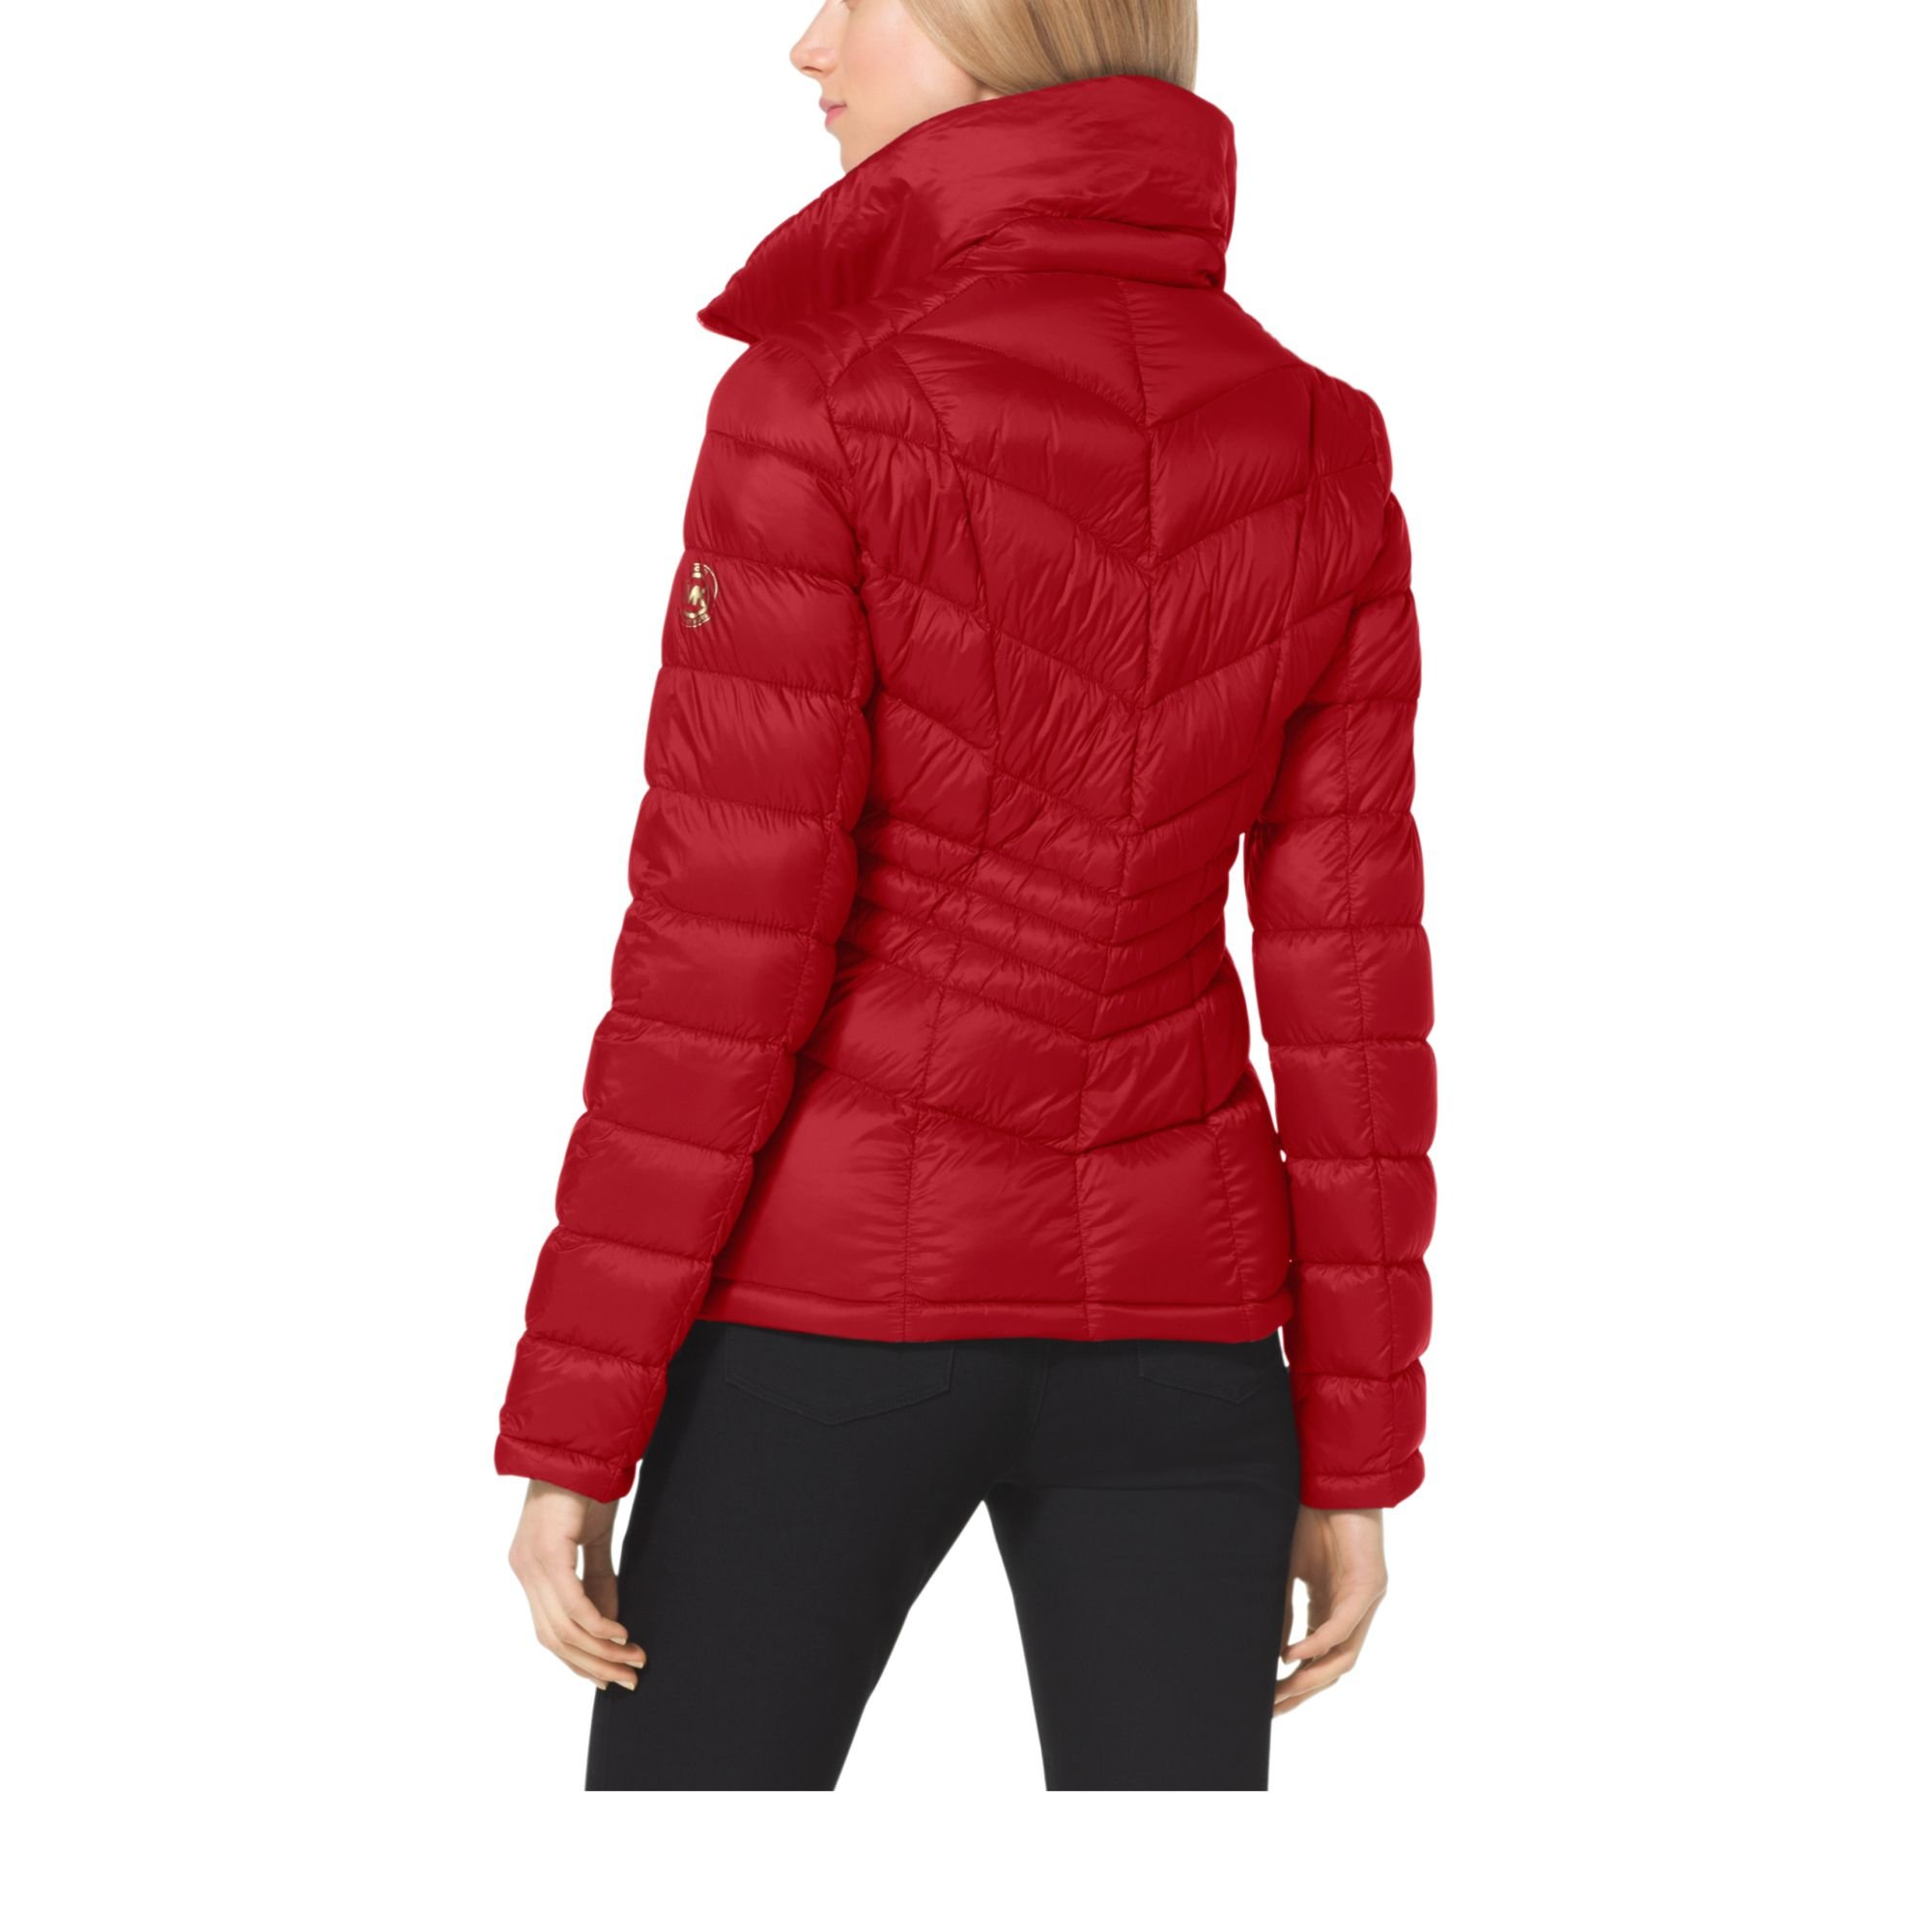 Michael Kors Quilted Nylon Jacket In Red Lyst